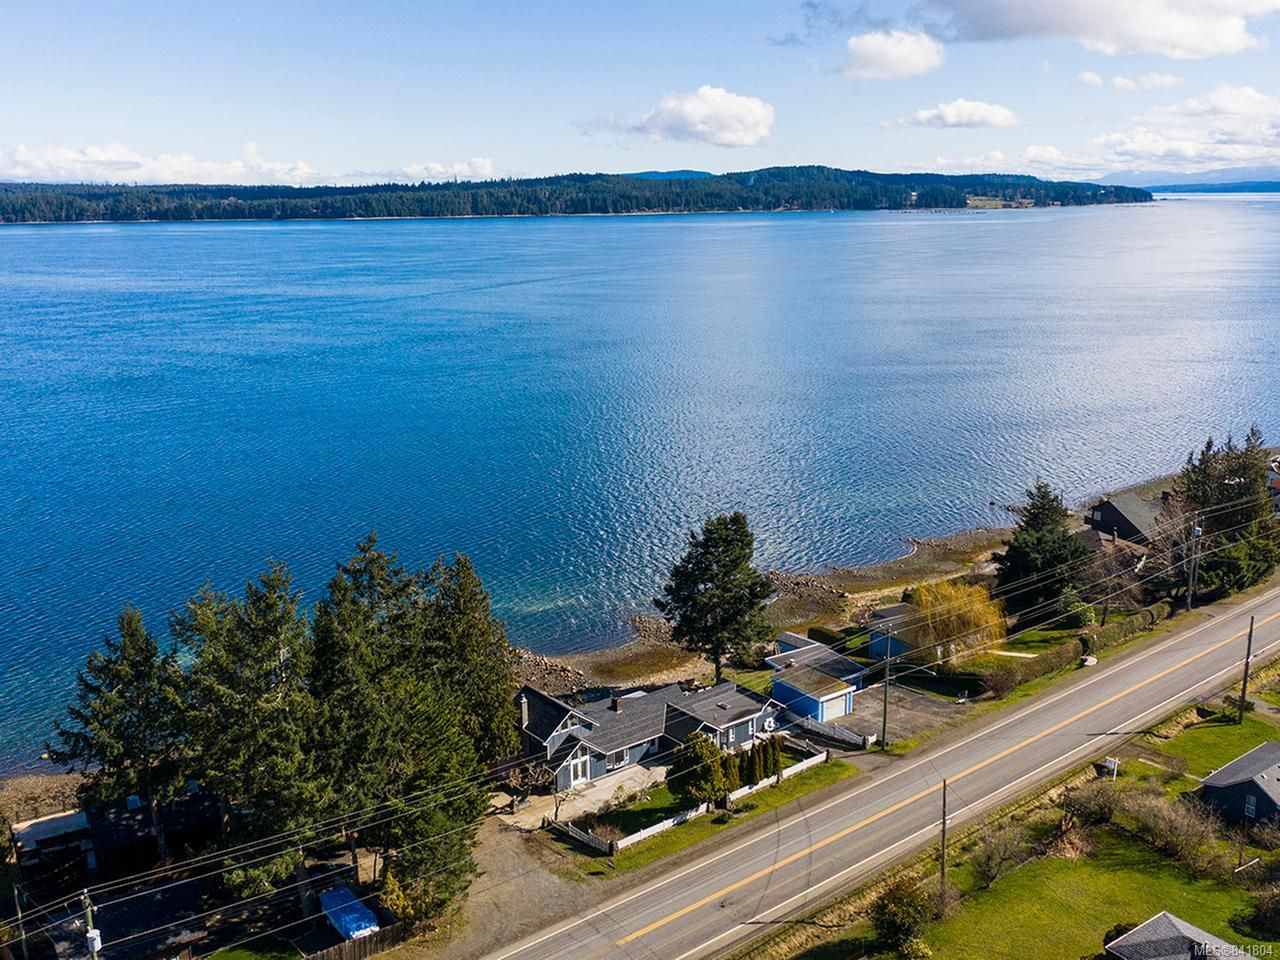 Main Photo: 5668 S Island Hwy in UNION BAY: CV Union Bay/Fanny Bay House for sale (Comox Valley)  : MLS®# 841804